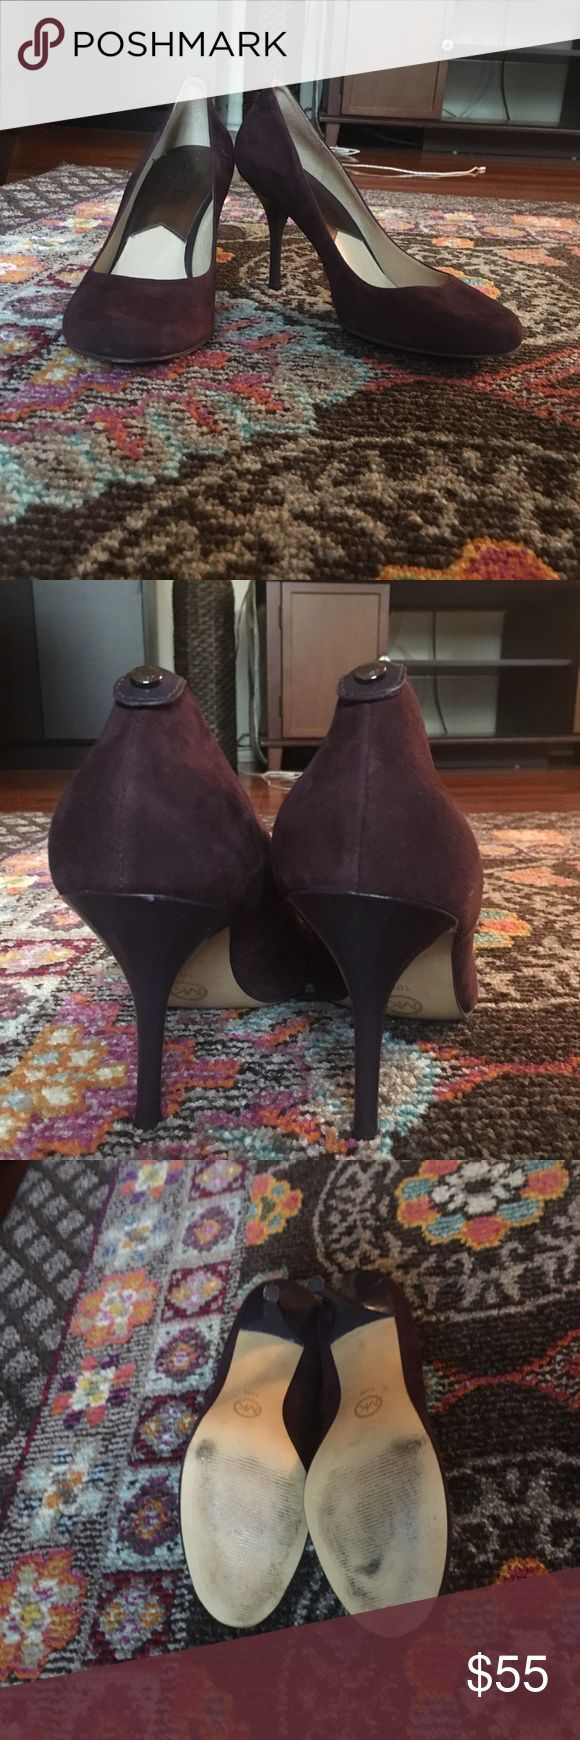 Plum suede Michael Kors heels size 10 These plum suede Michael kors heels are adorable and comfy. They are lightly worn (maybe 8 times ever) and in great condition. Size 10. Michael Kors Shoes Heels